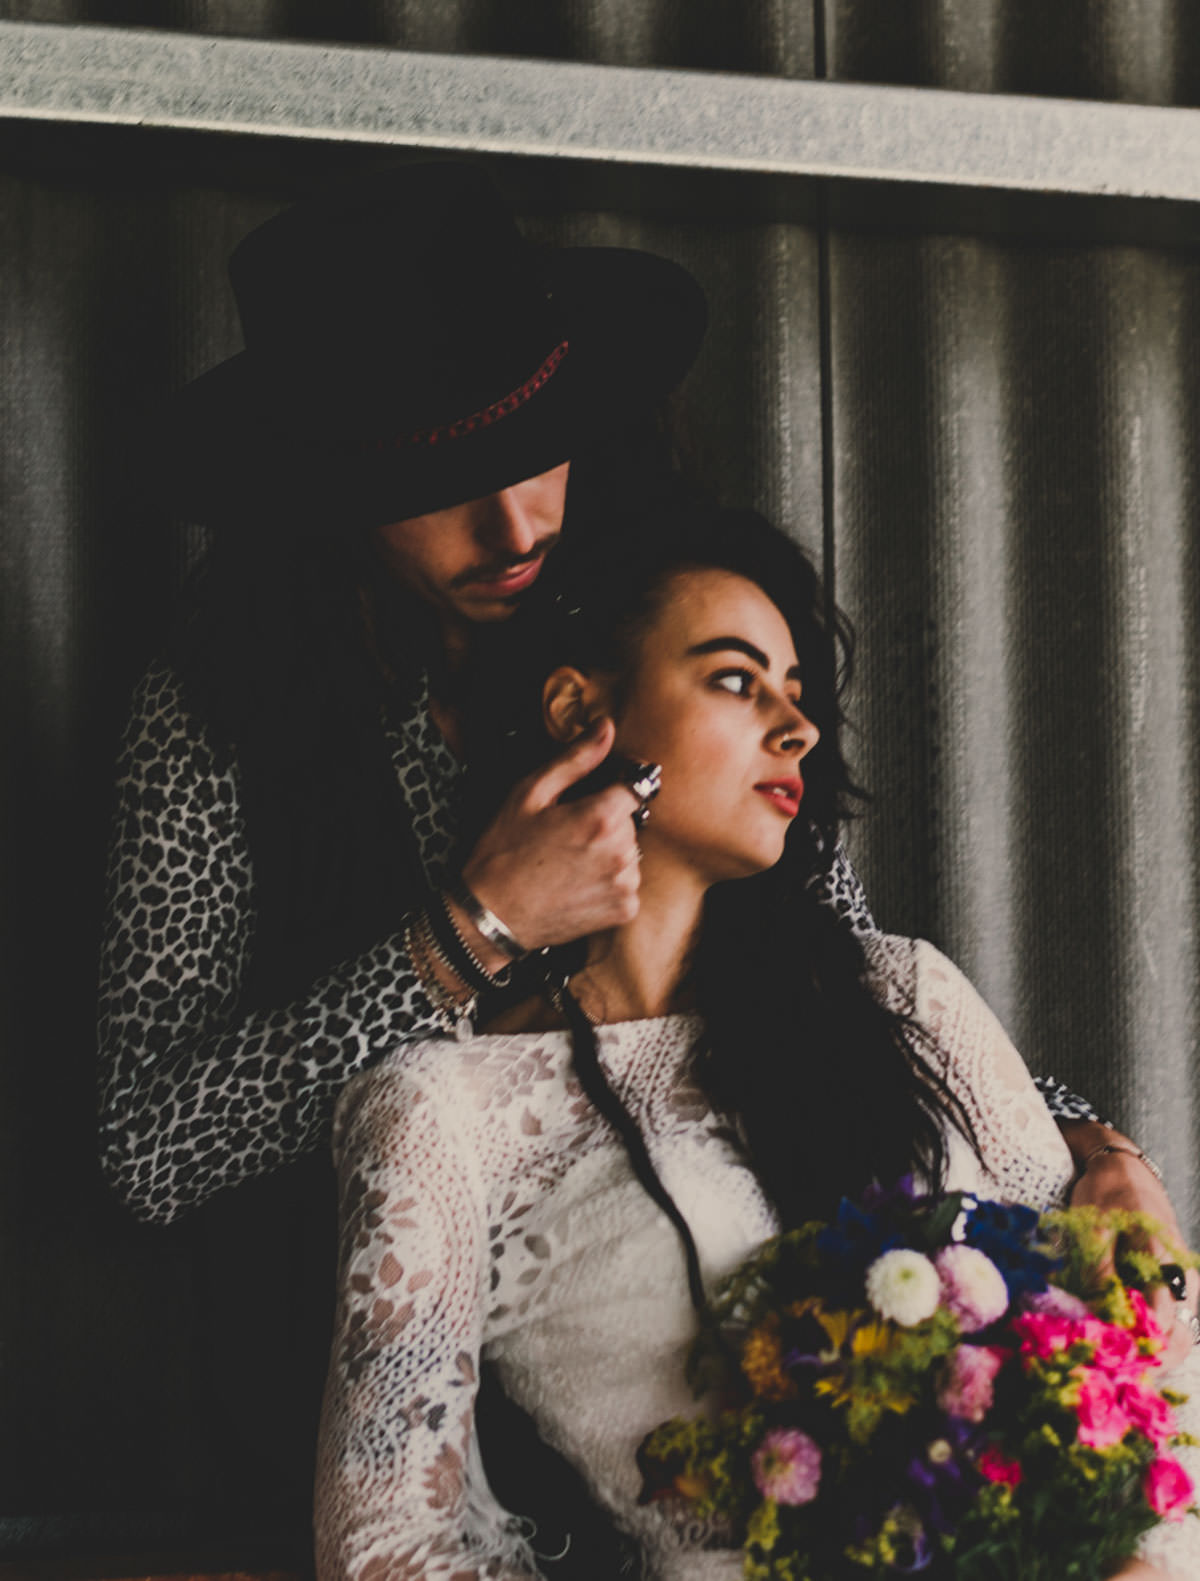 Edgy, Colourpop, Bridal Inspiration with Festival salternative barn wedding, alternative weddings, barn wedding, bright confetti, colourful wedding flowers, colourpop wedding colourful wedding, edgy bride, exclusive venue hire, fedora hats, festival bride, festival wedding, fringing, glitter face makeup, Jade Maguire photography, Ophelia rose, painted leather jacket, pom poms, Skikoba bride, statement wedding flowers, the giraffe shed, wales wedding, wales wedding venues, wedding glitter, wedding leather jackets